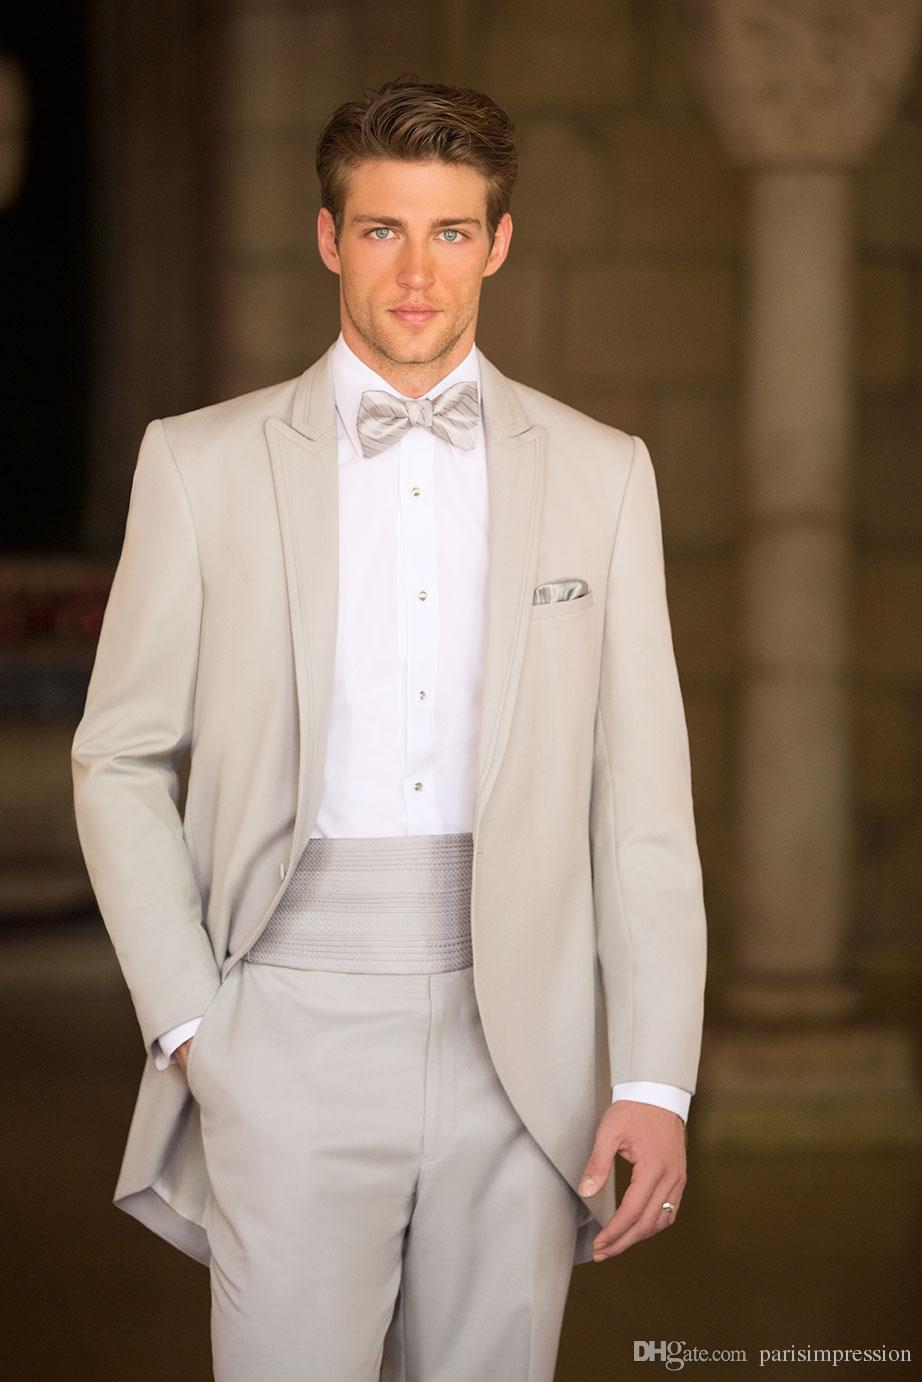 New Arrival Formal Slim Fit Beige Wedding Suits For Men Peaked Lapel Best Tailcoats Morning One On Groomsmen Suit In From S Clothing